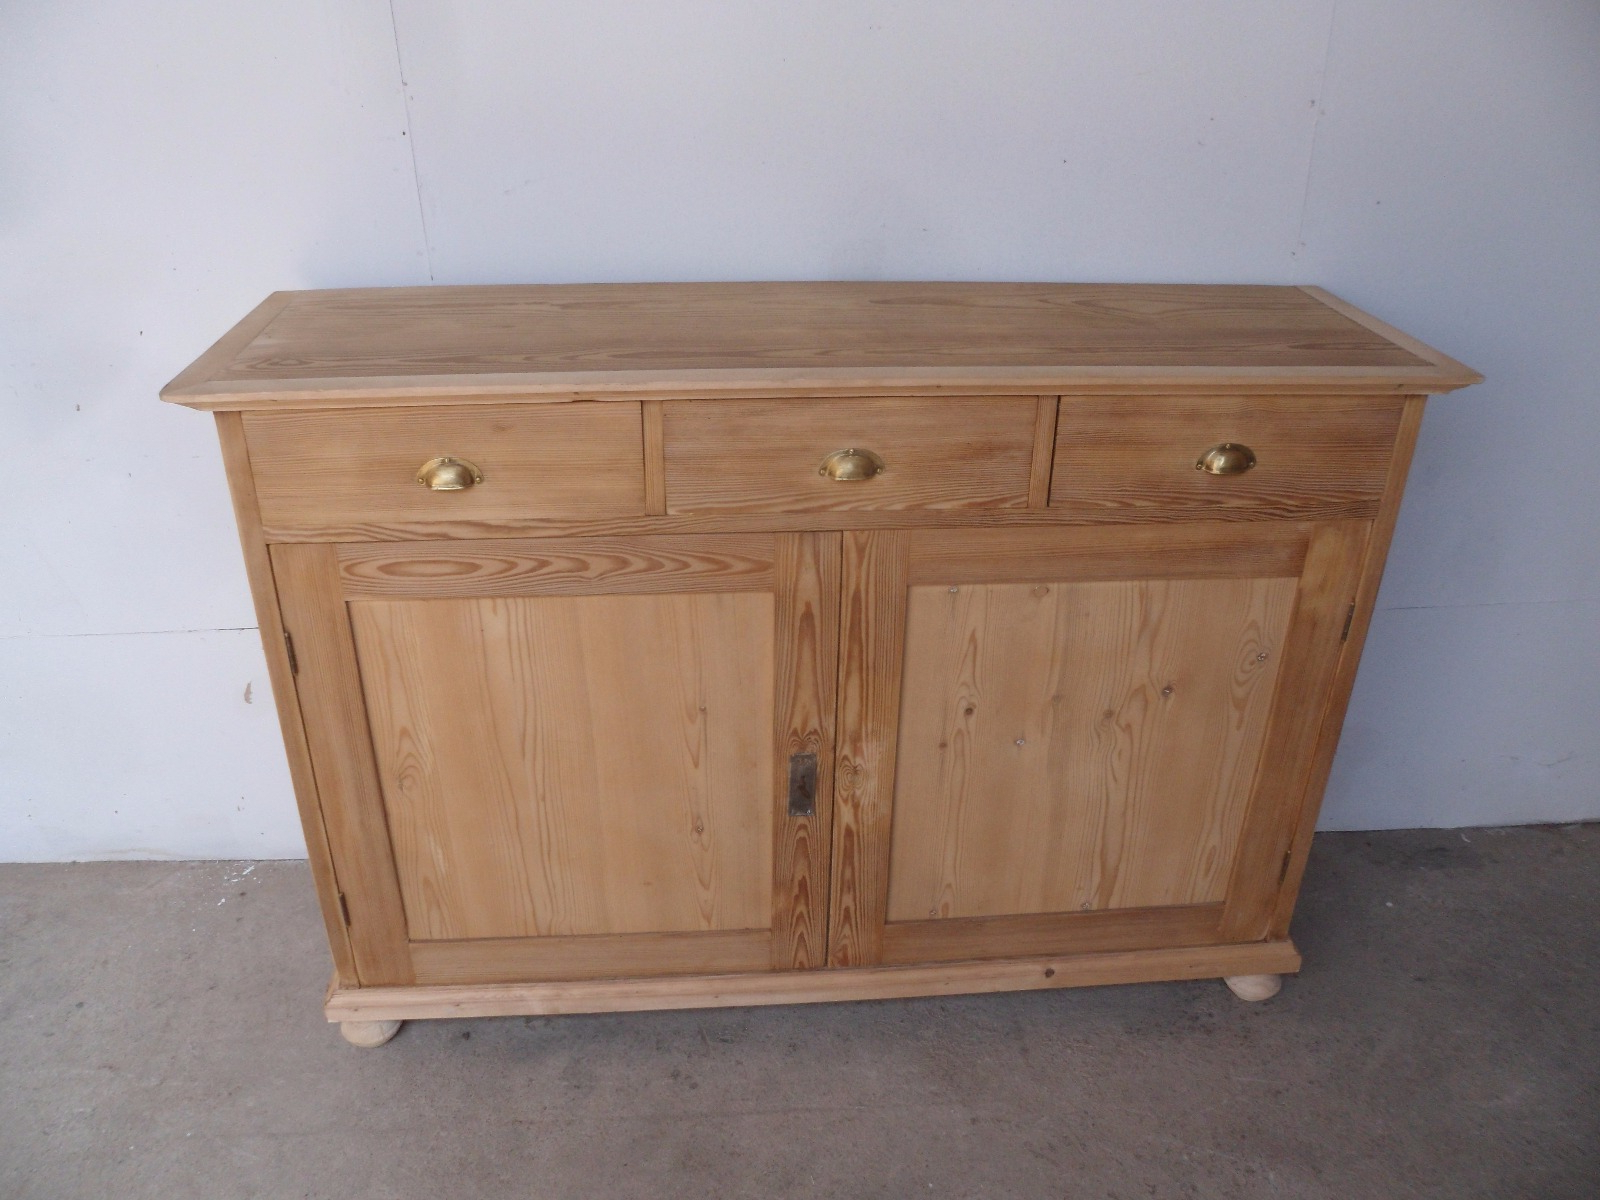 2018 Aged Pine 3 Drawer 2 Door Sideboards Intended For Large Narrow Old Pine 2 Door 3 Drawer Kitchen Dresser Base To Wax (View 1 of 20)